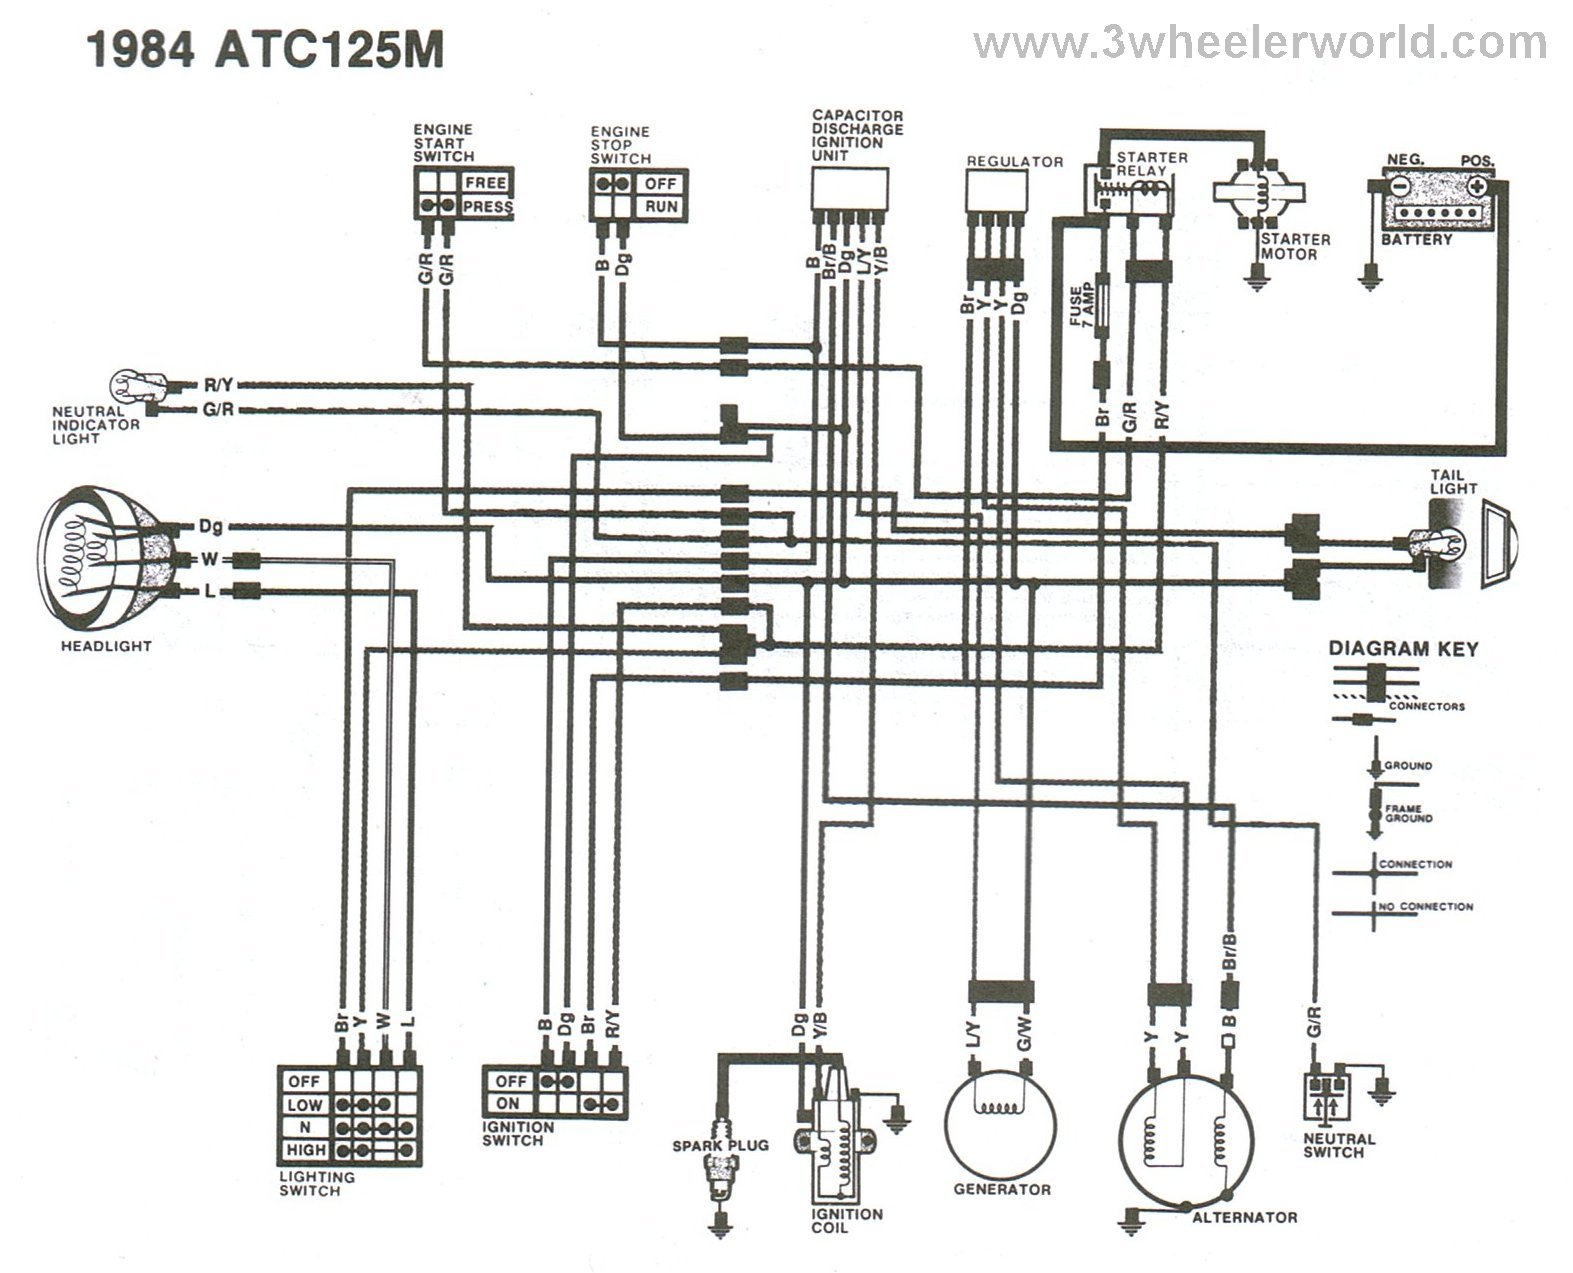 ATC125Mx84 atc 300 wiring diagram atc 300 software \u2022 indy500 co  at bayanpartner.co